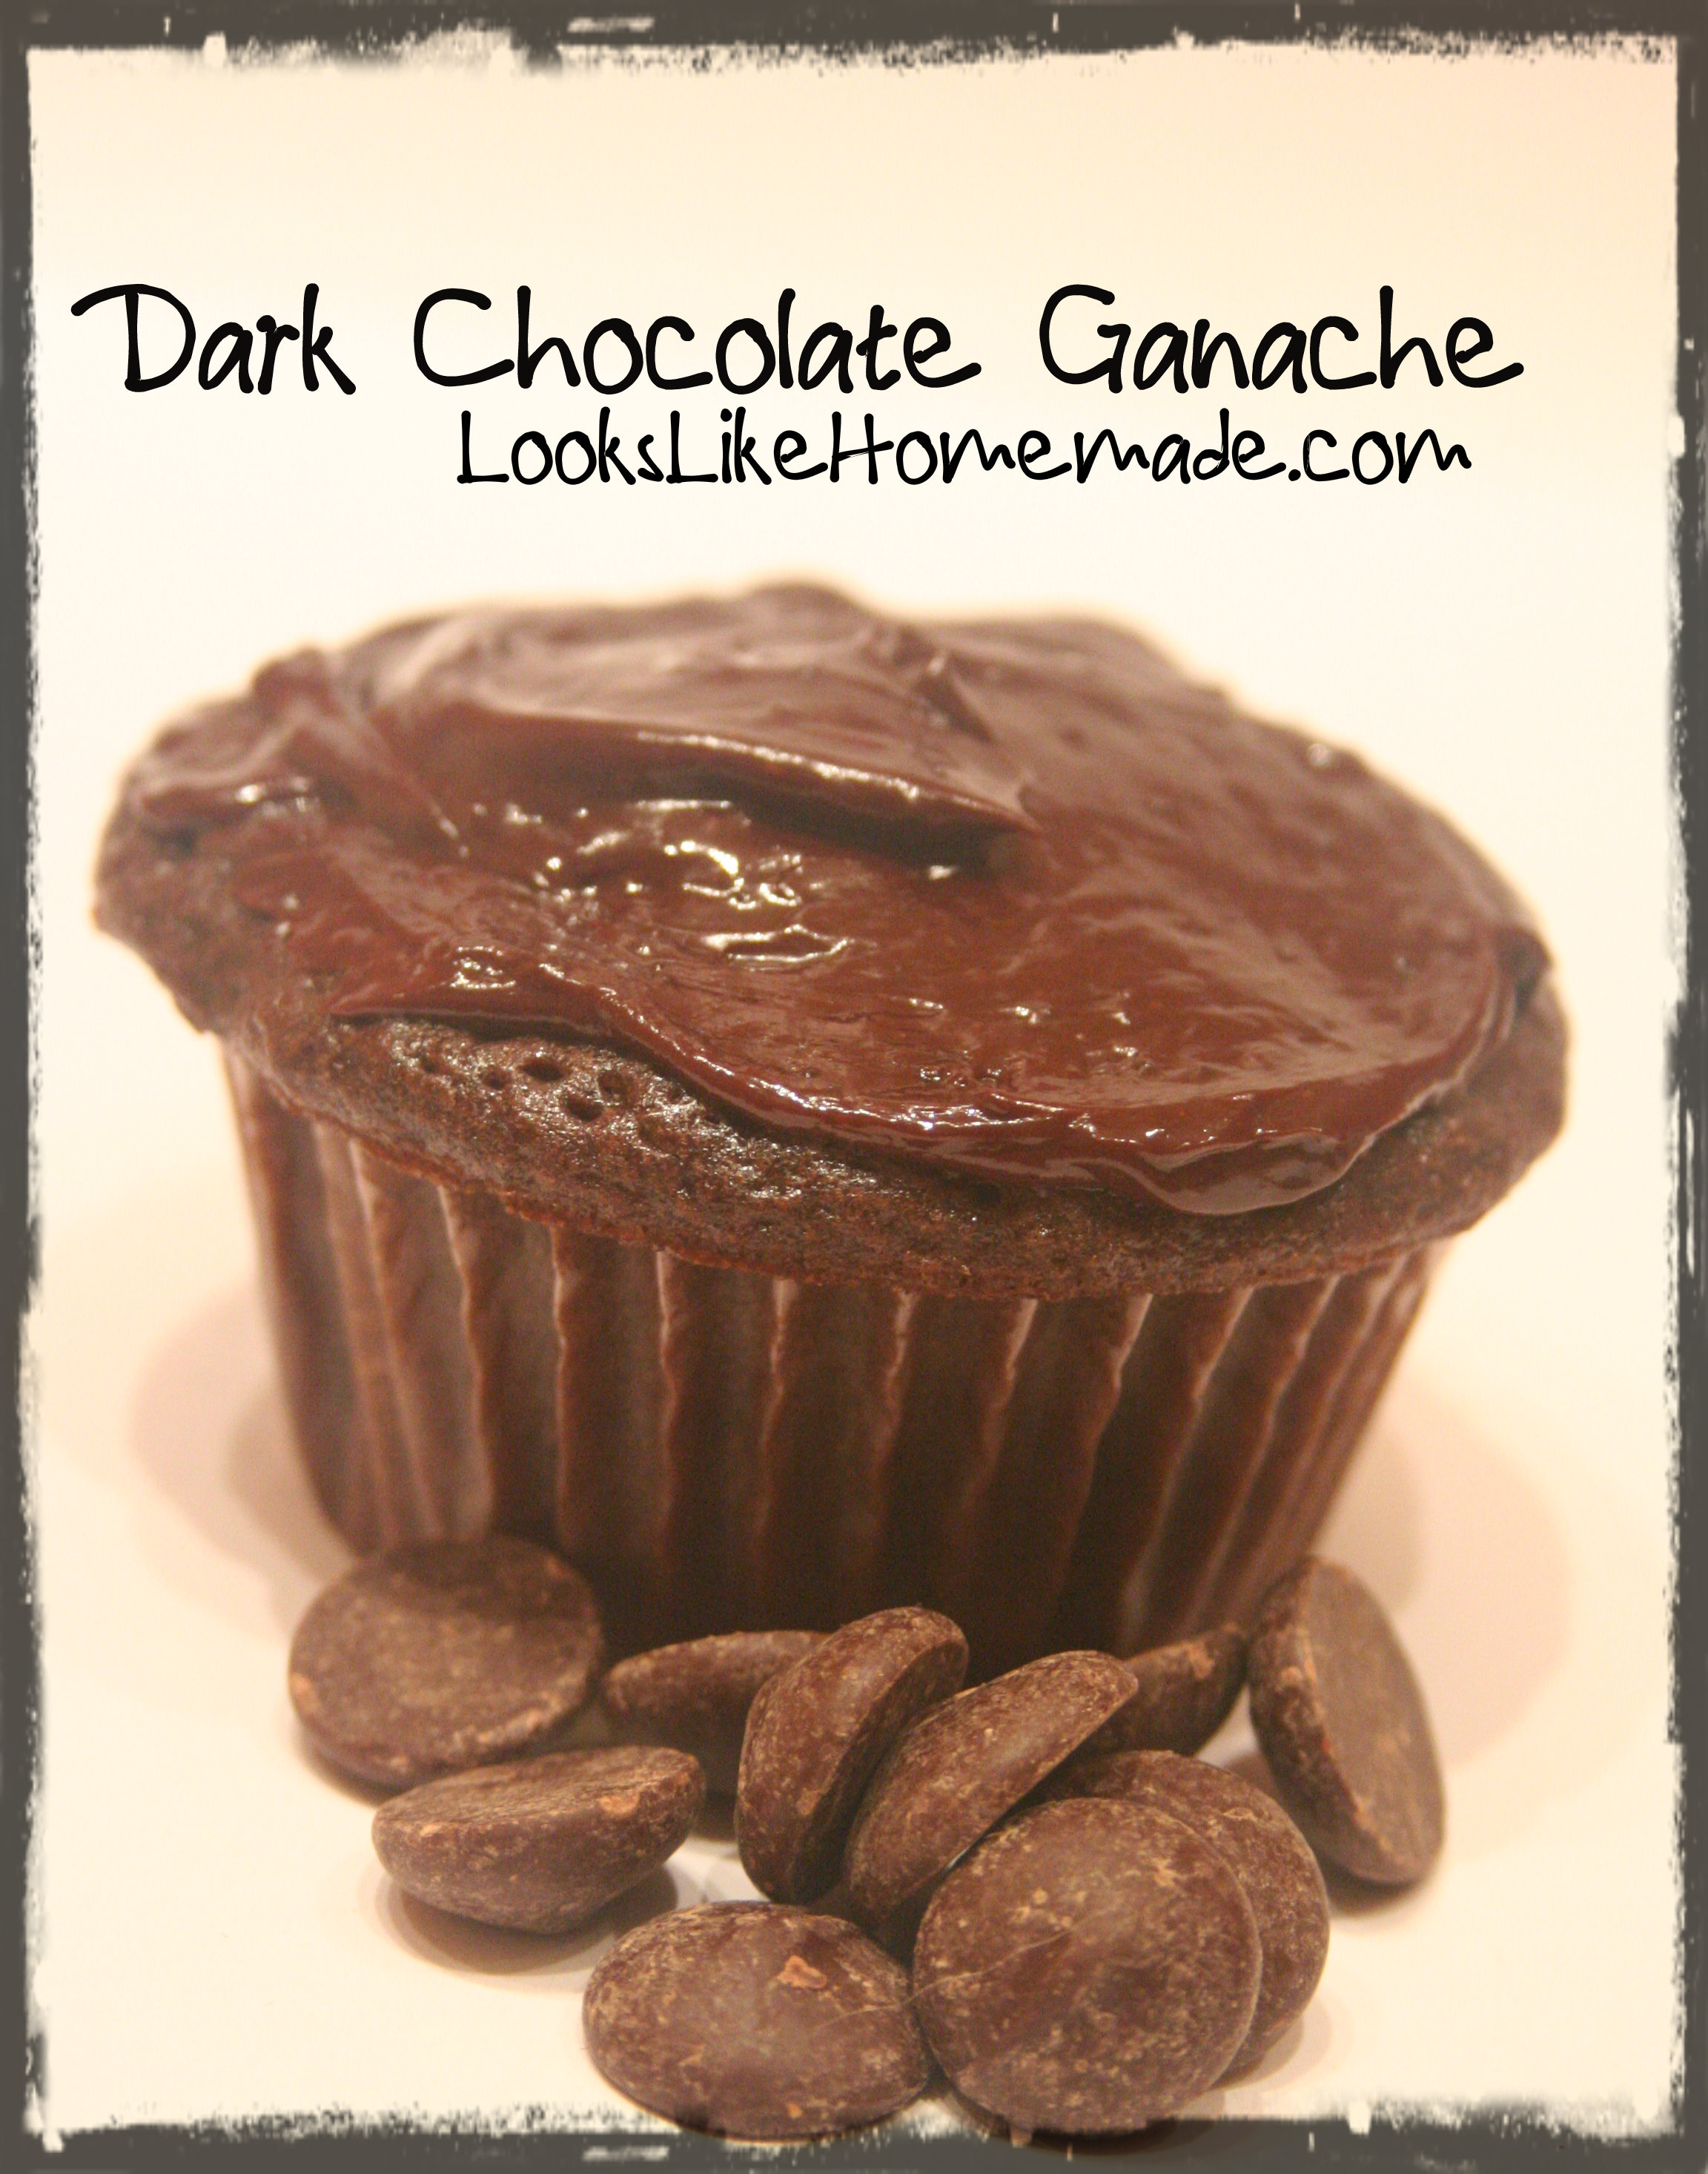 Dark Chocolate Ganache Frosting Recipe